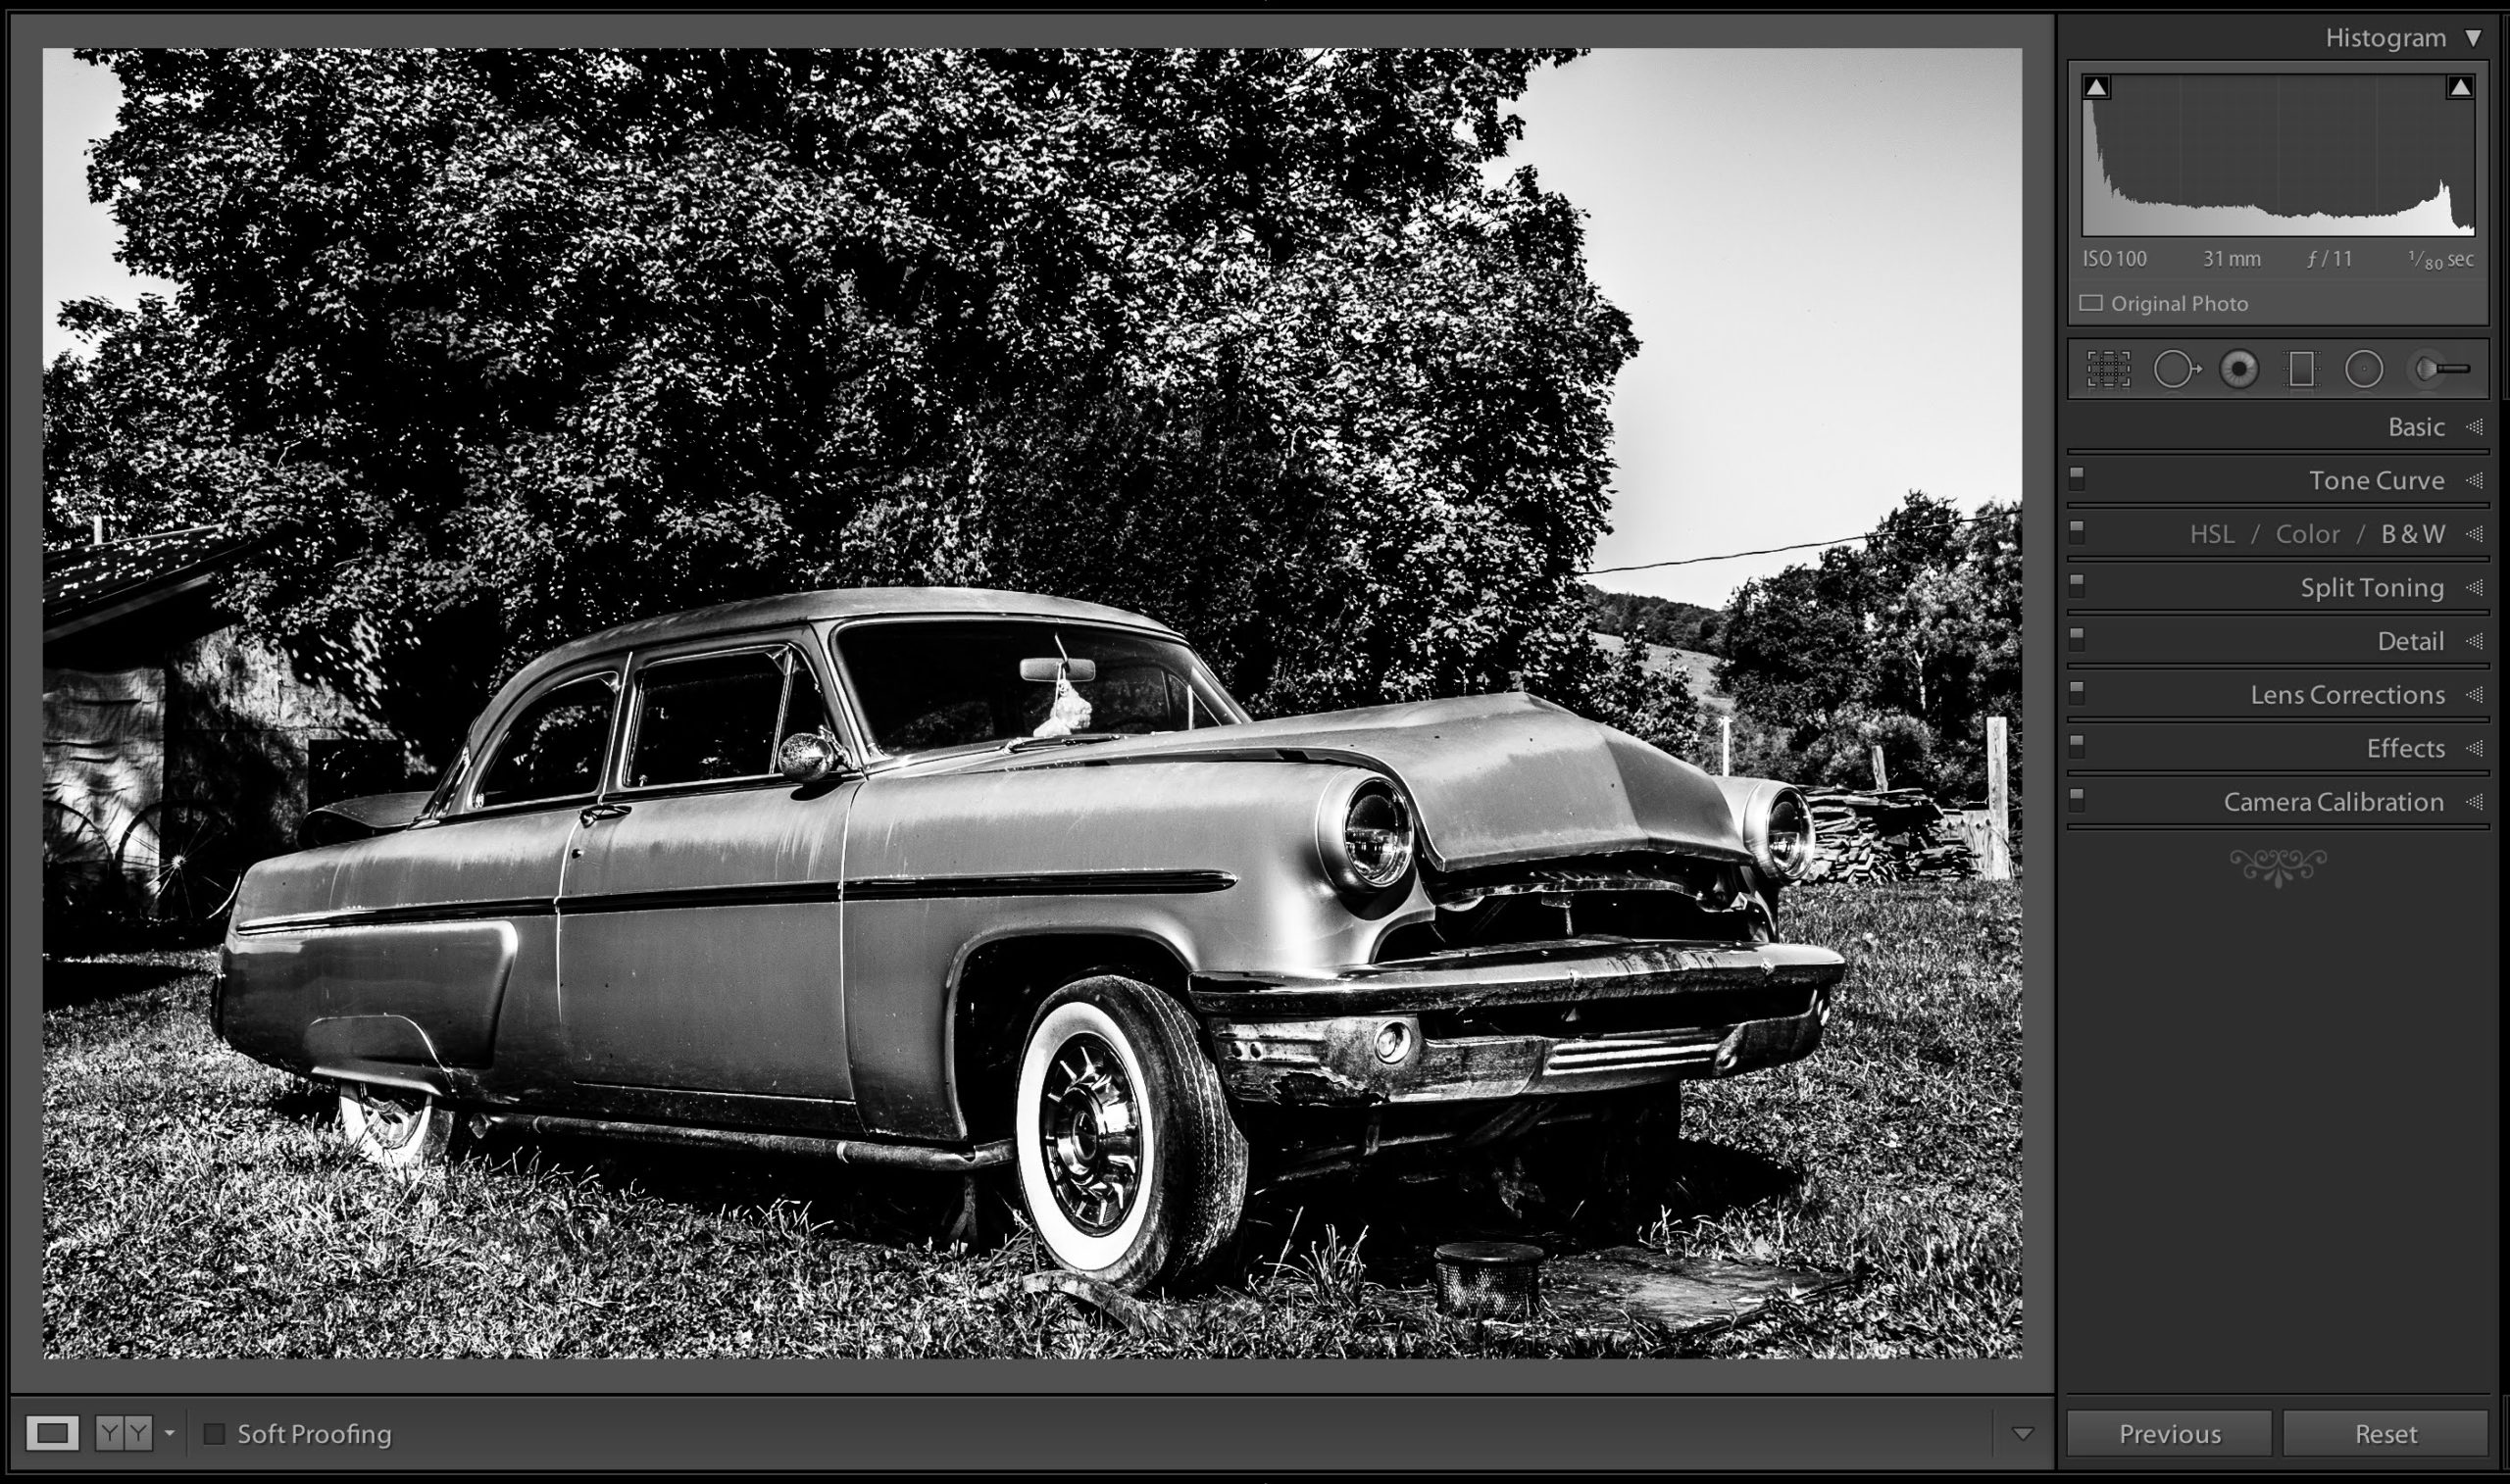 Creating a black and white image with an hdr look in lightroom